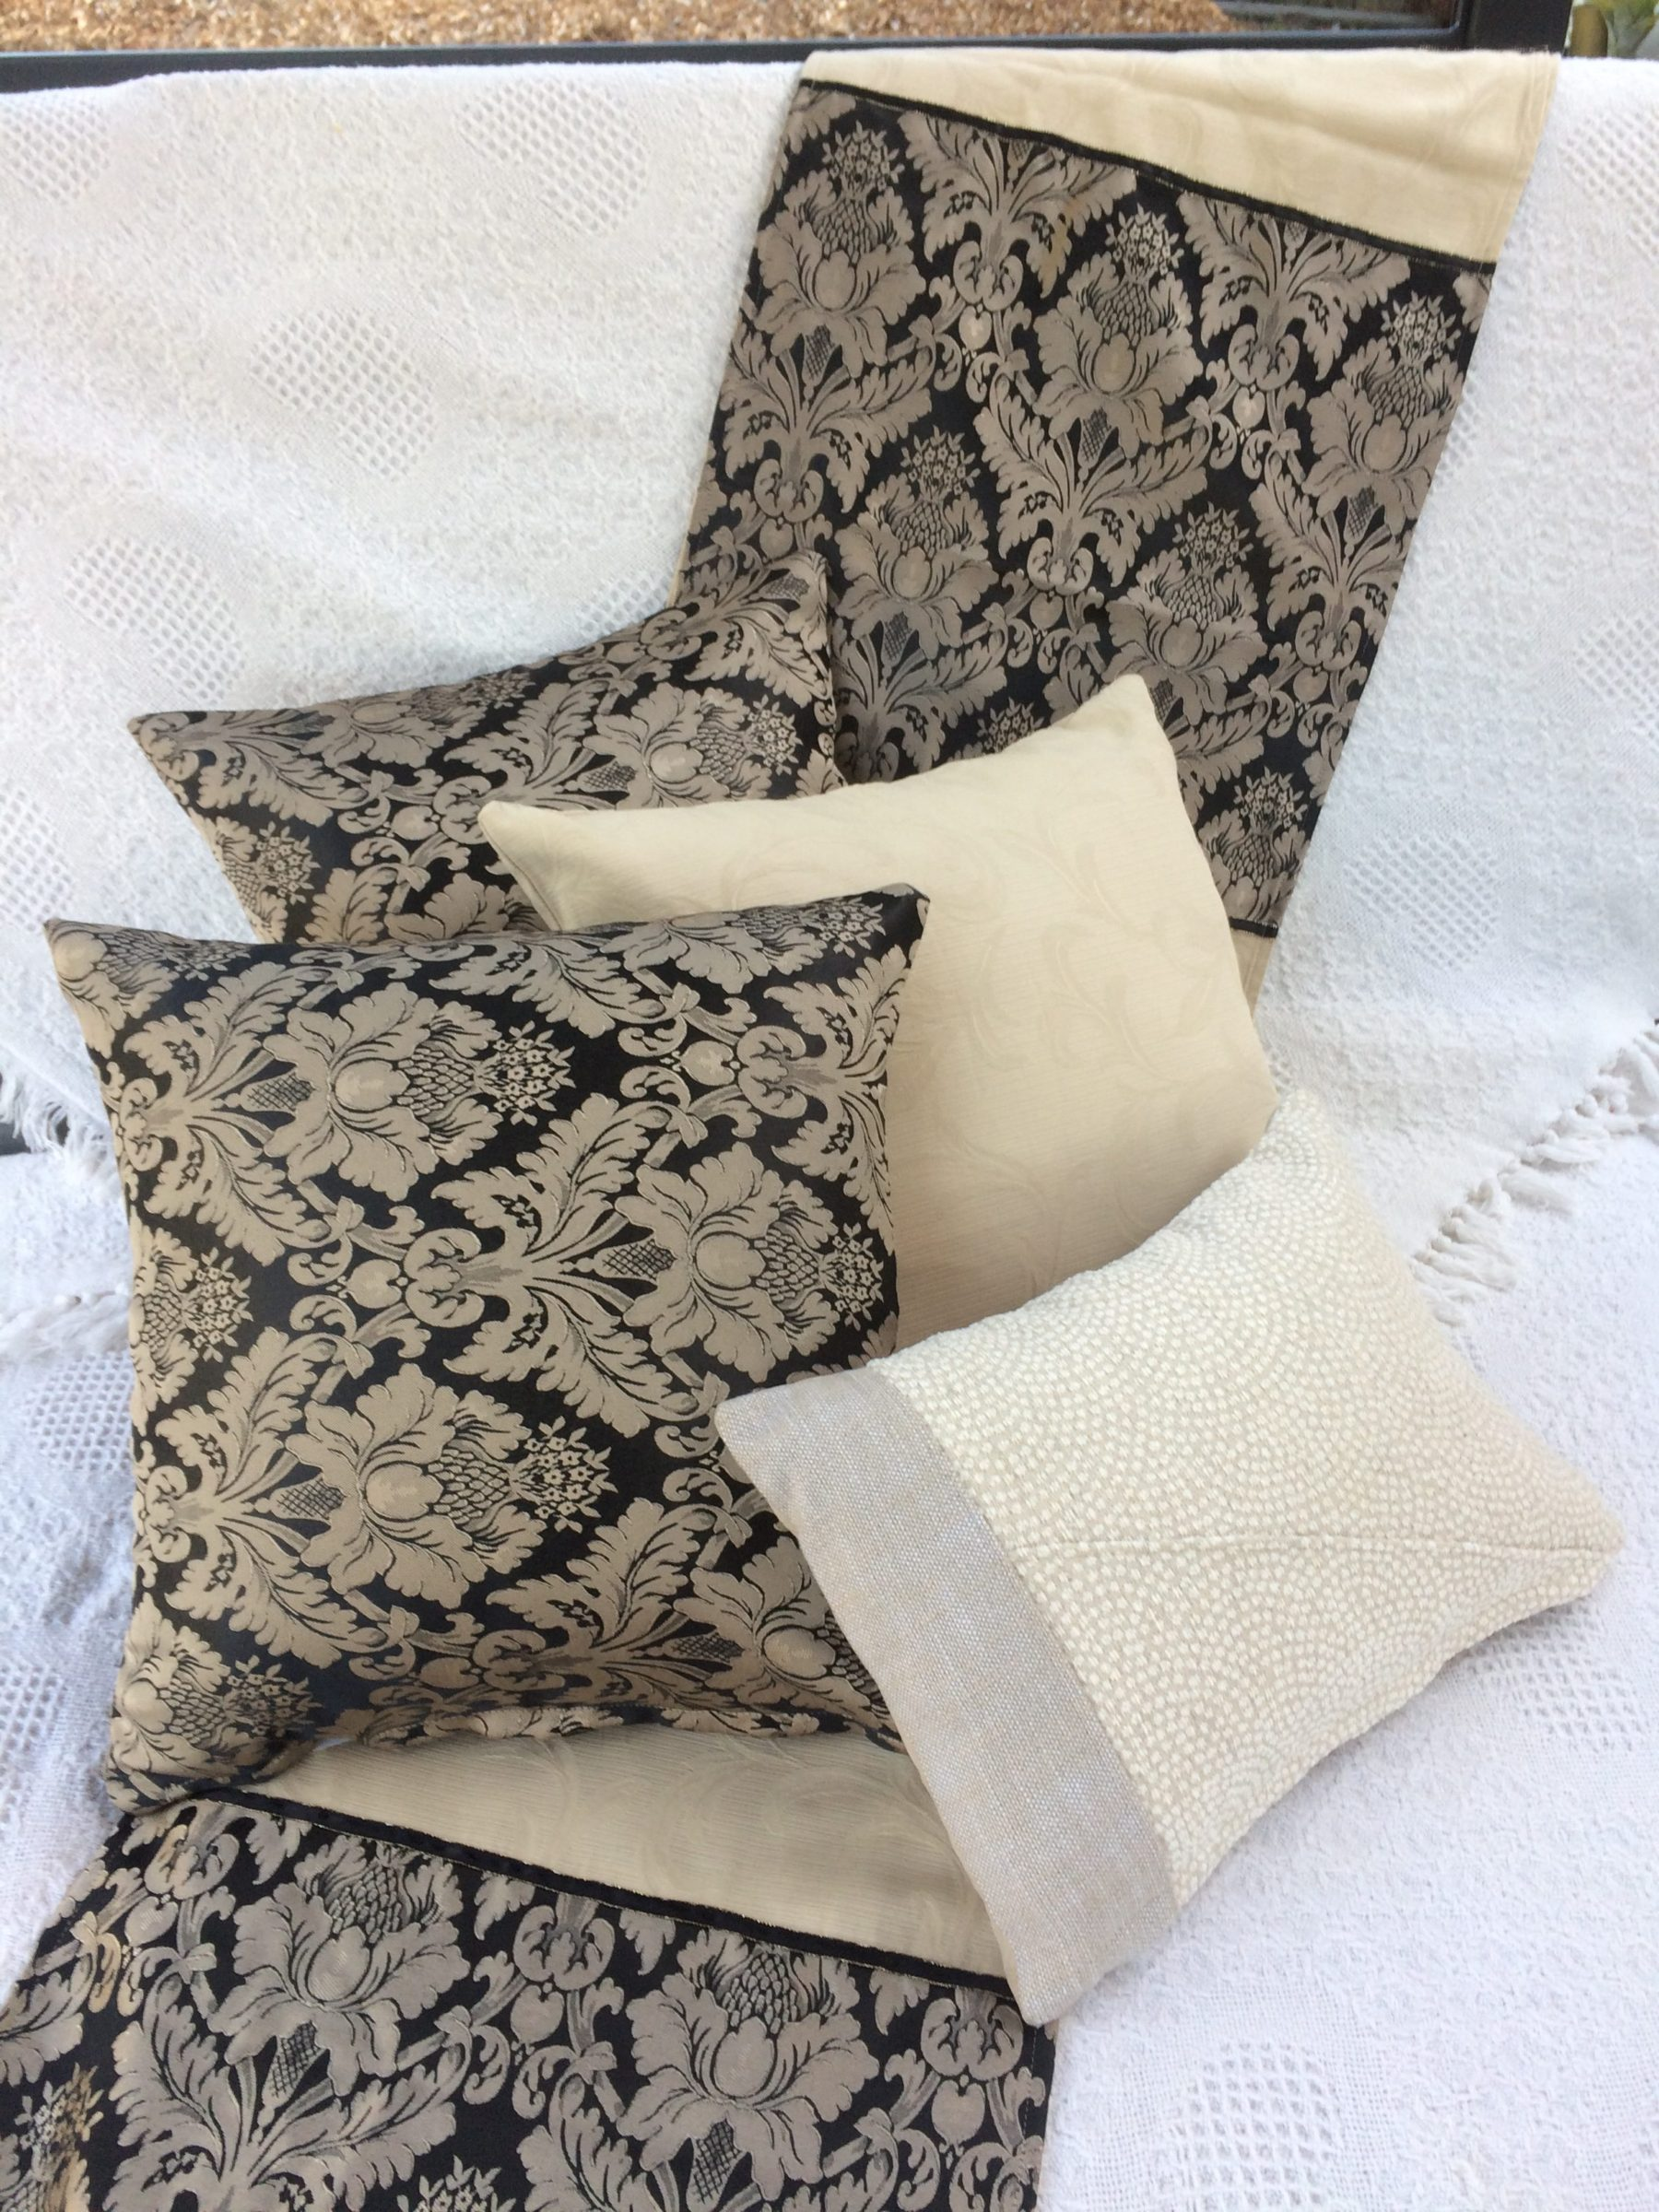 Bed Runners Luxury Black And Beige Runner And Cushions Set Sonya Marie For All Your Sewing Needs